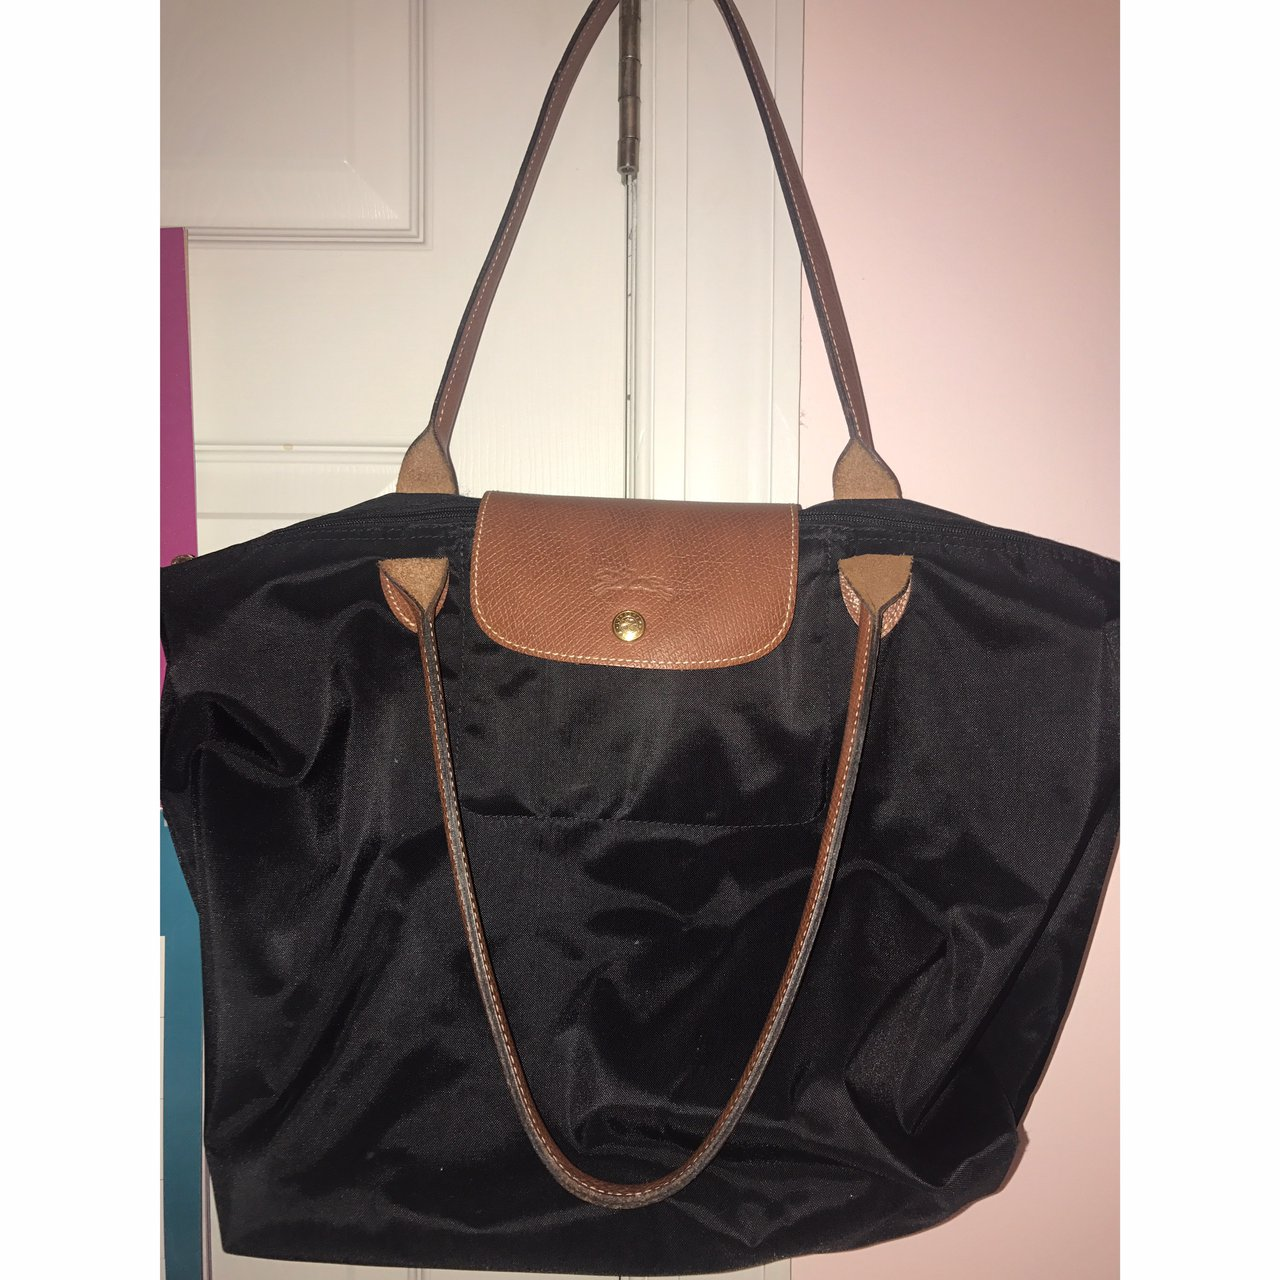 bbcd9181c29 Used Longchamp Le Pliage Medium Size Tote Original Price - Depop